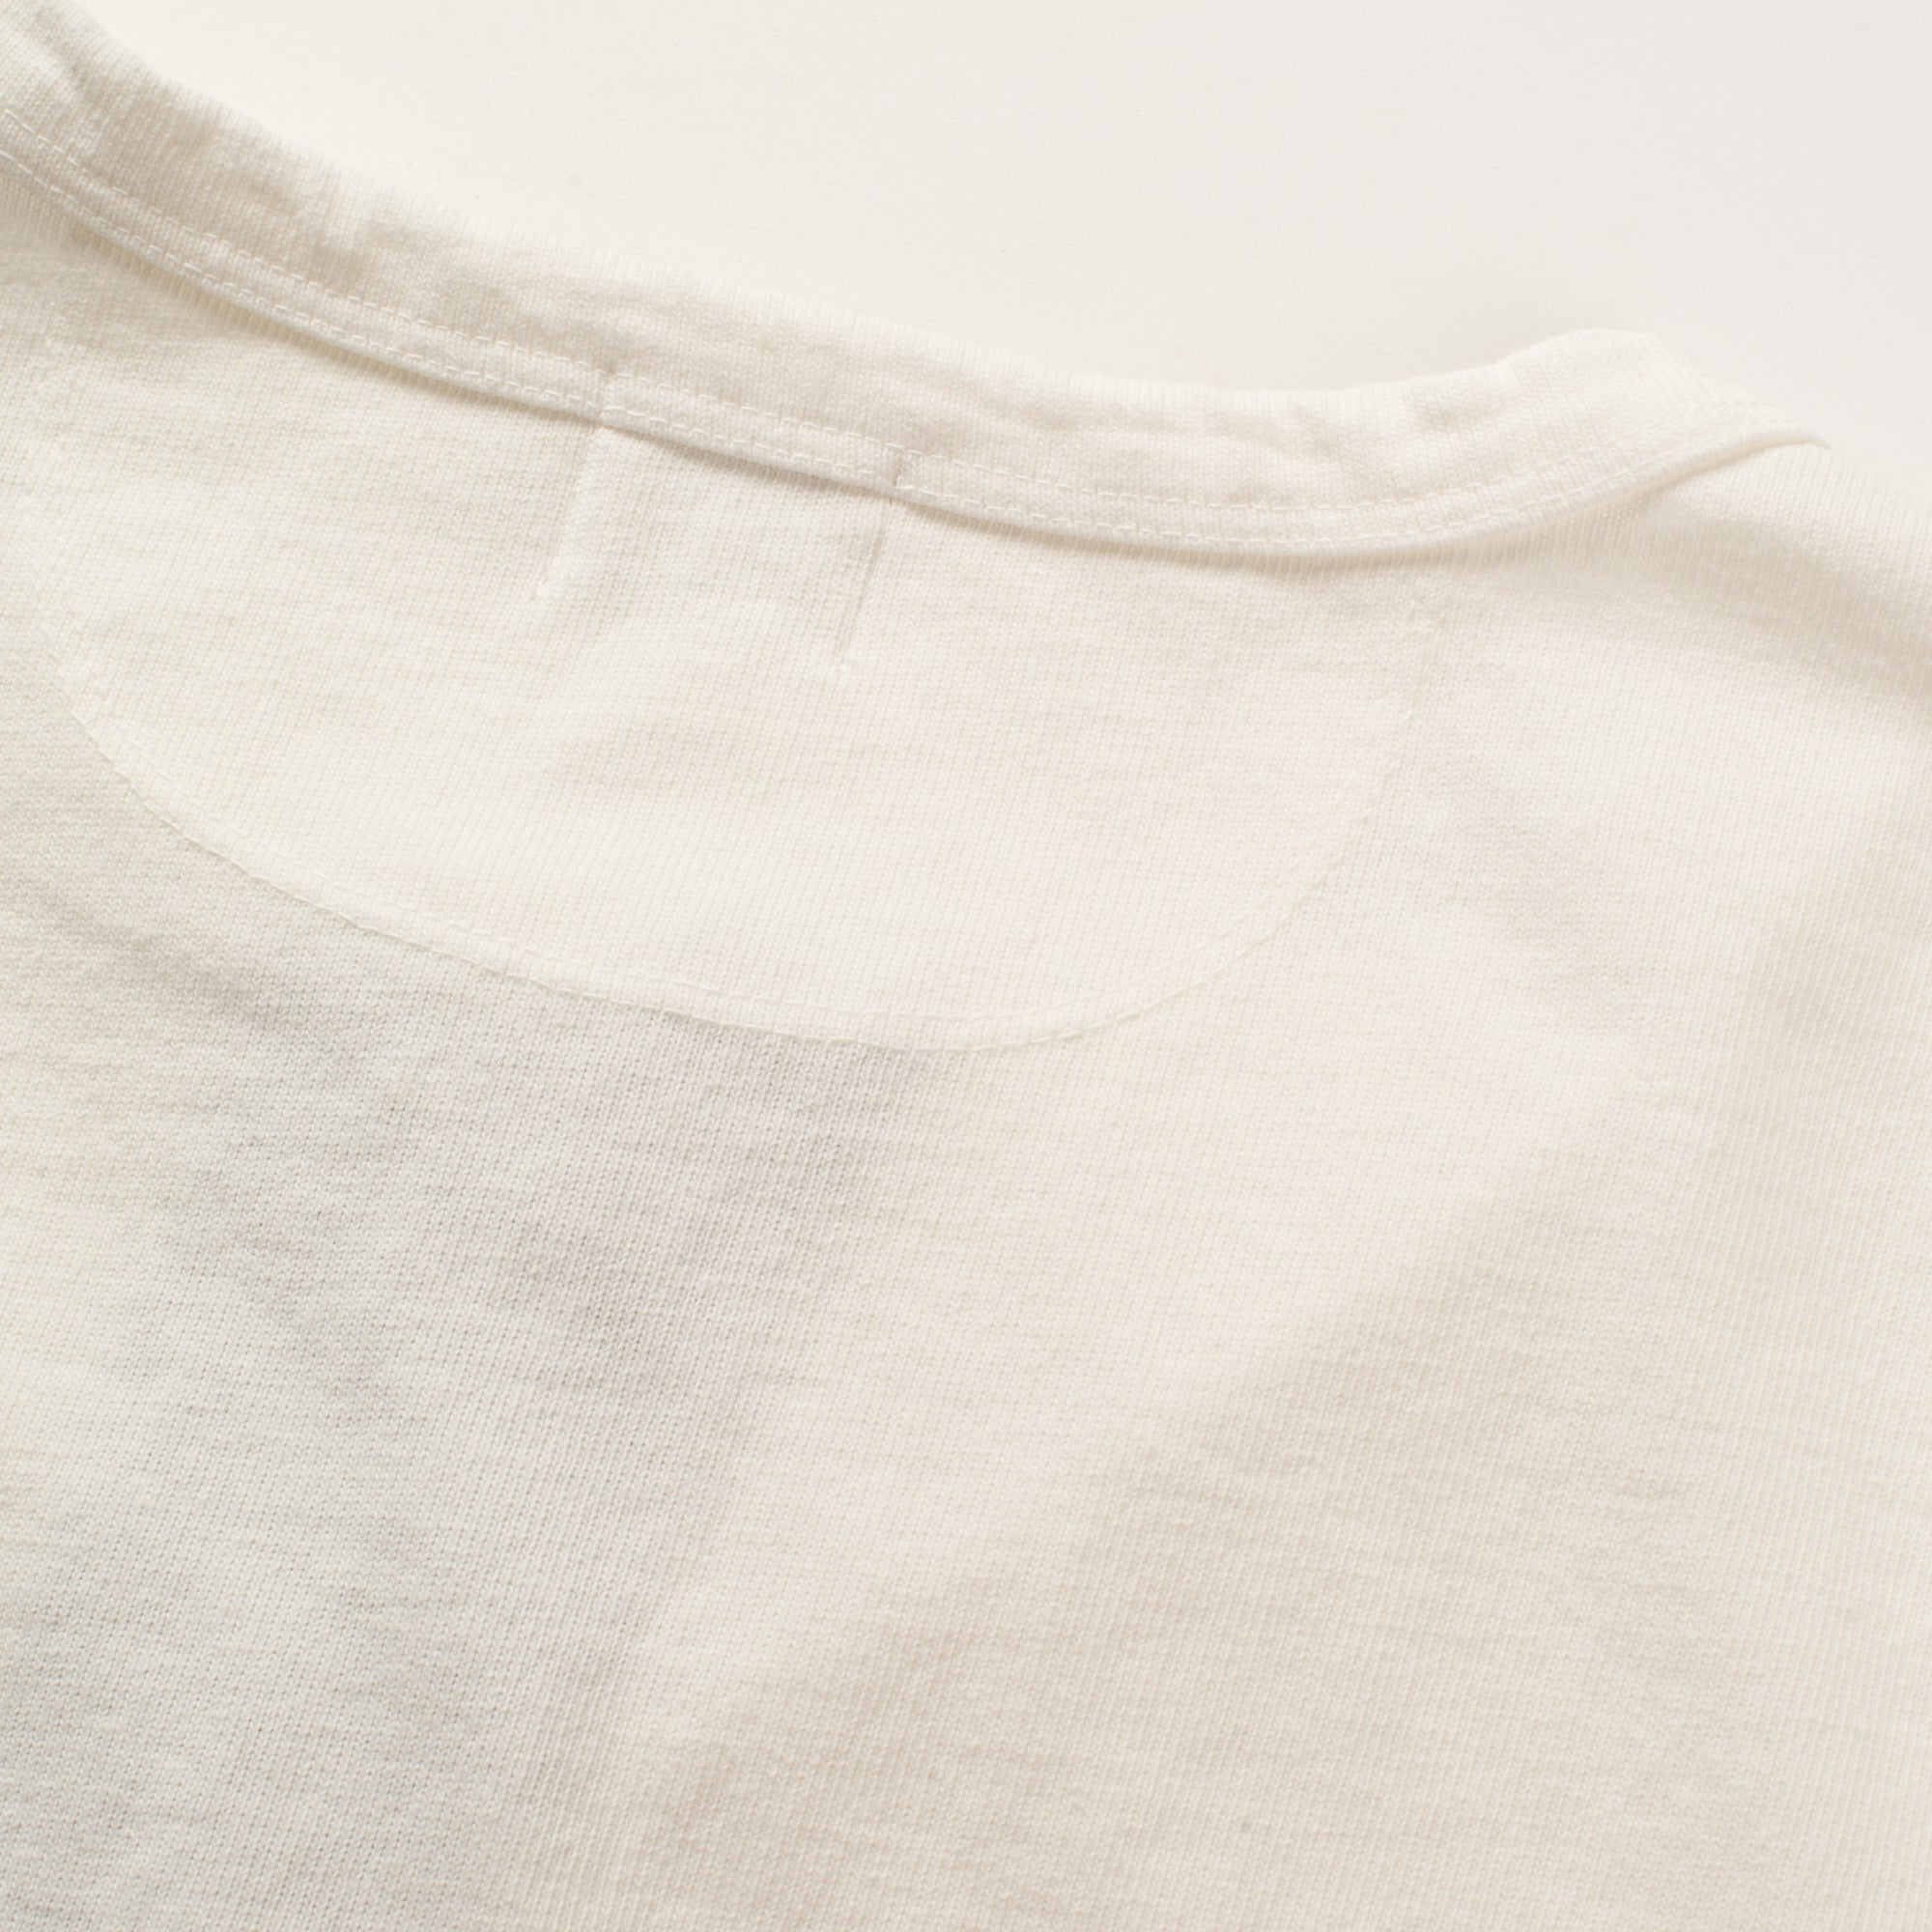 13 OUNCE HENLEY WHITE Upper Back